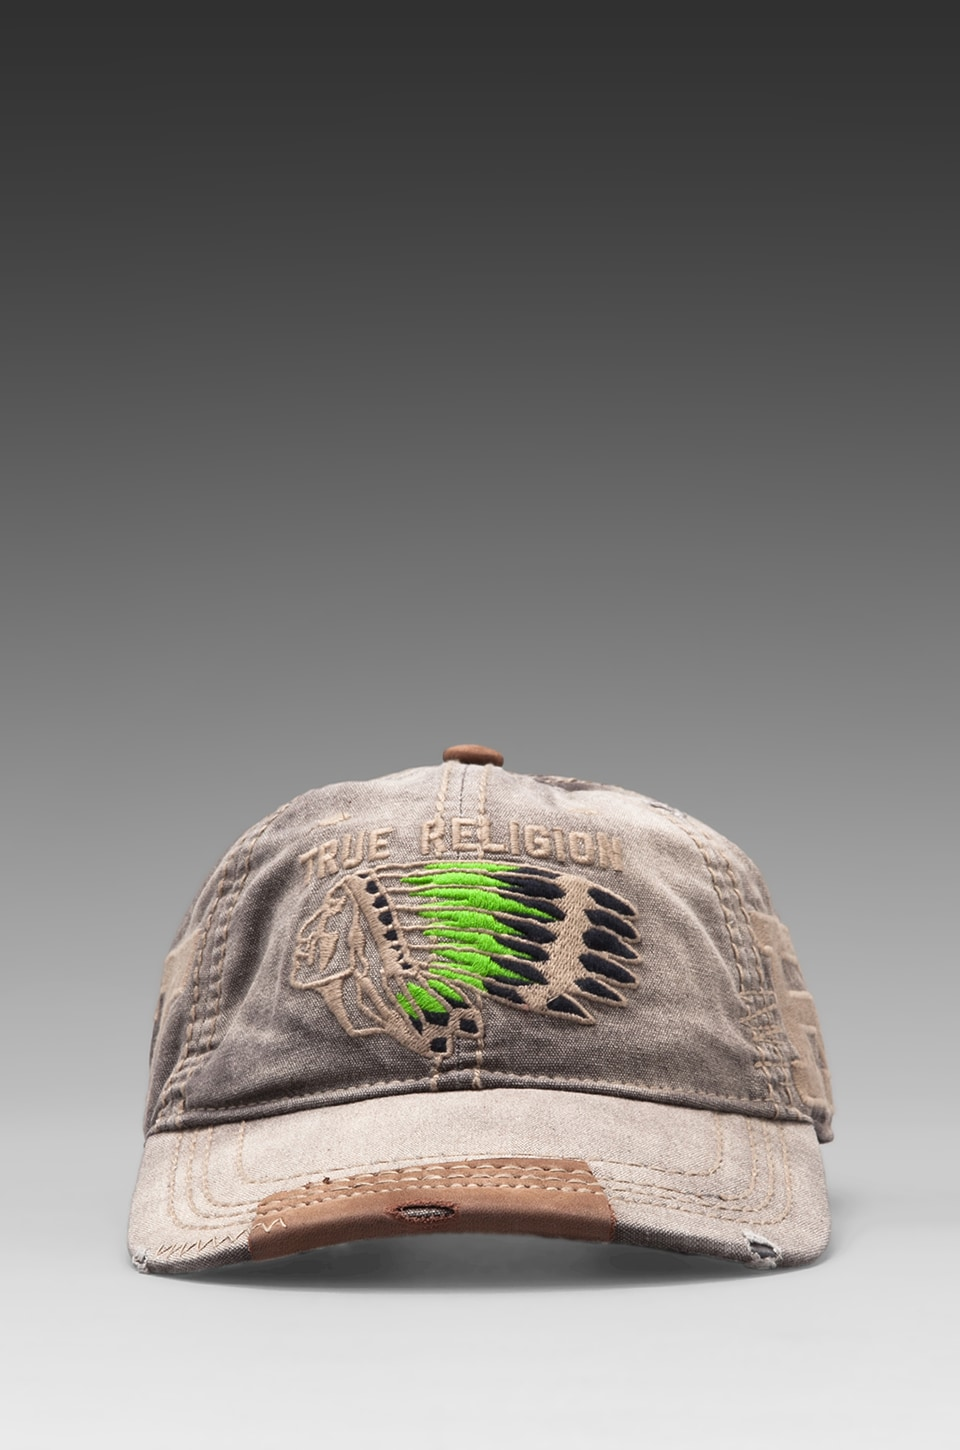 True Religion Chief Baseball Cap in Grey